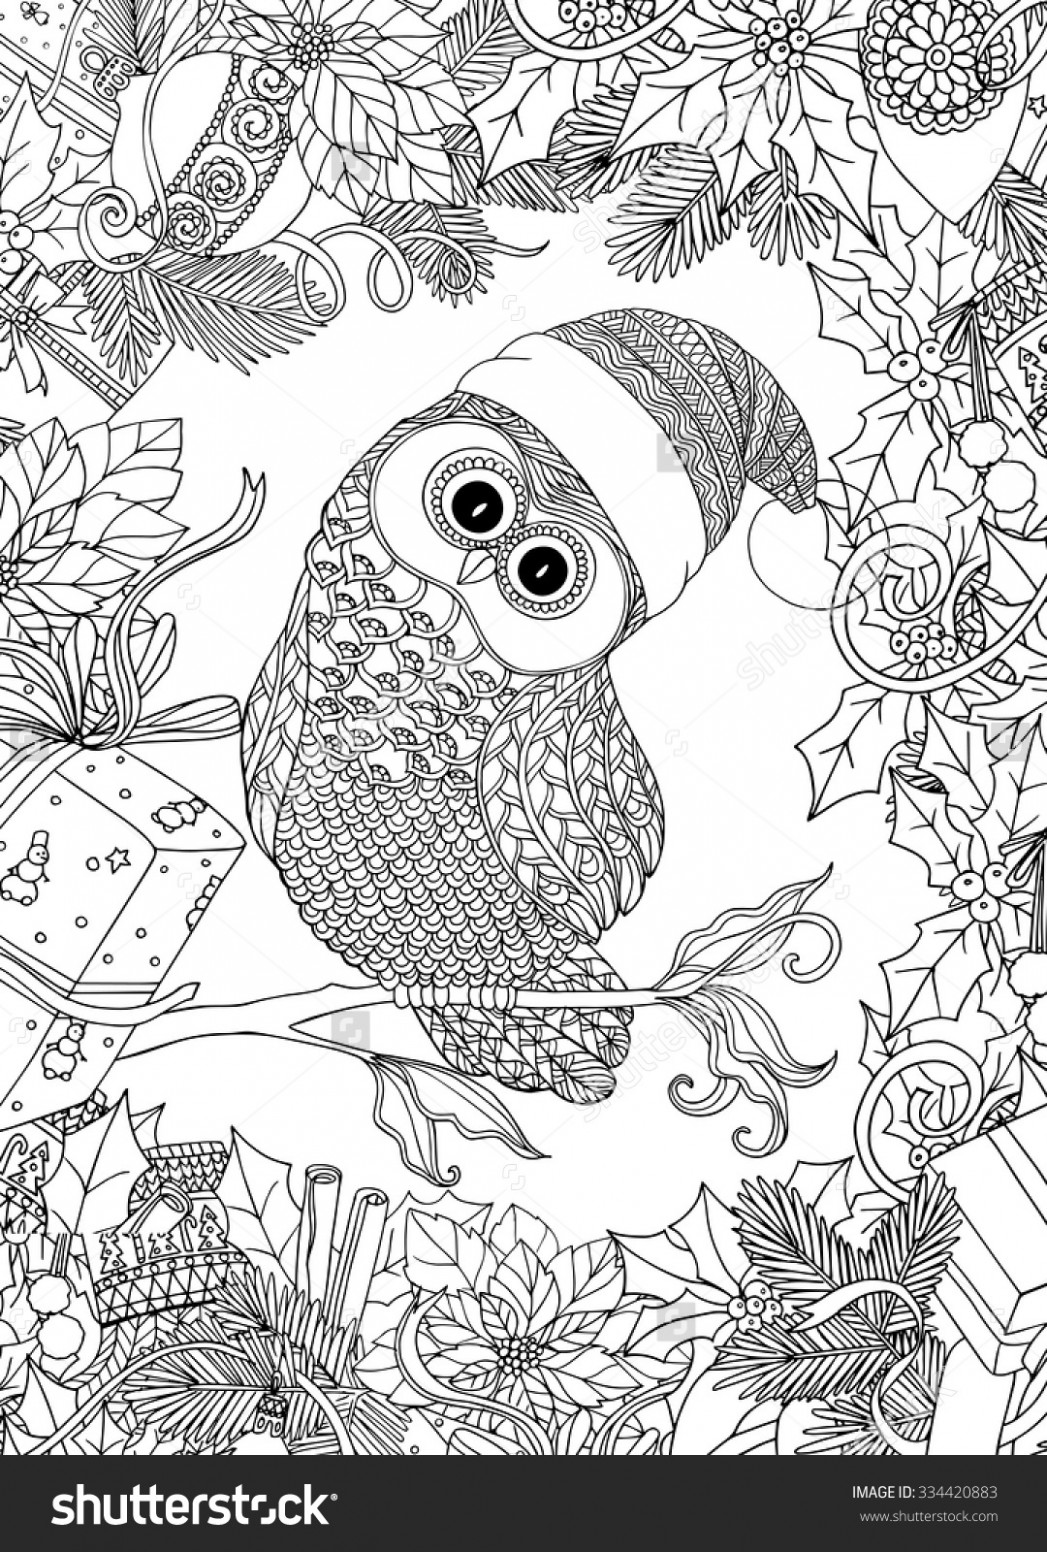 Coloring Ideas : Christmas Coloring Books For Adults Free Printable ...